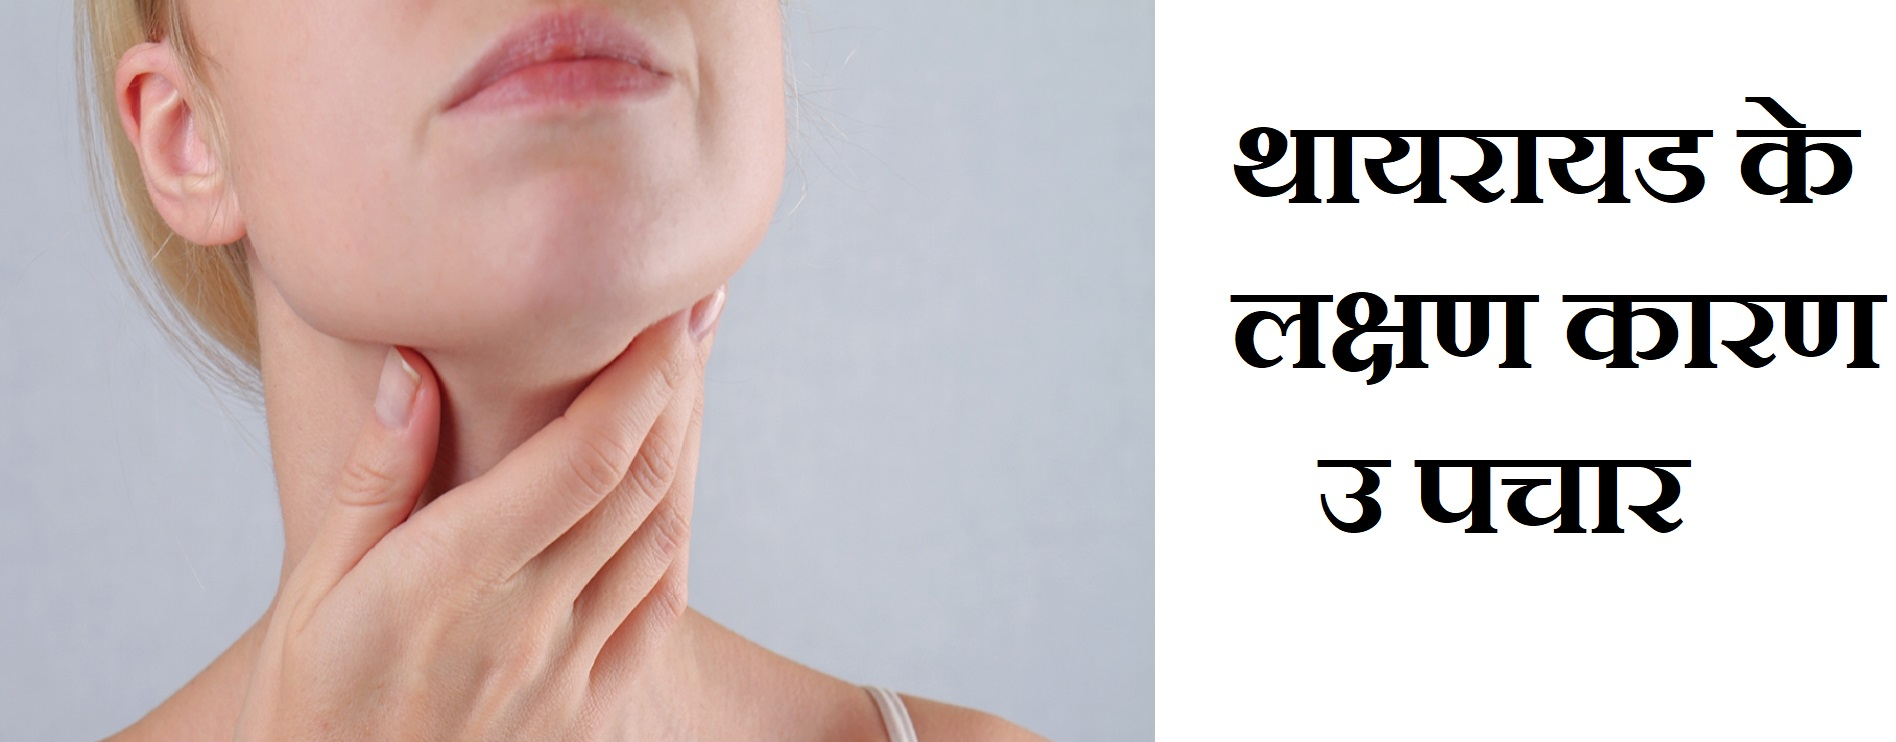 थायरायड के लक्षण, कारण एवं उपचार, Thyroid Disease Causes Treatment In Hindi, Nayichetana.com,Thyroid kaise kare door, thayrayad, thyriad hindi me